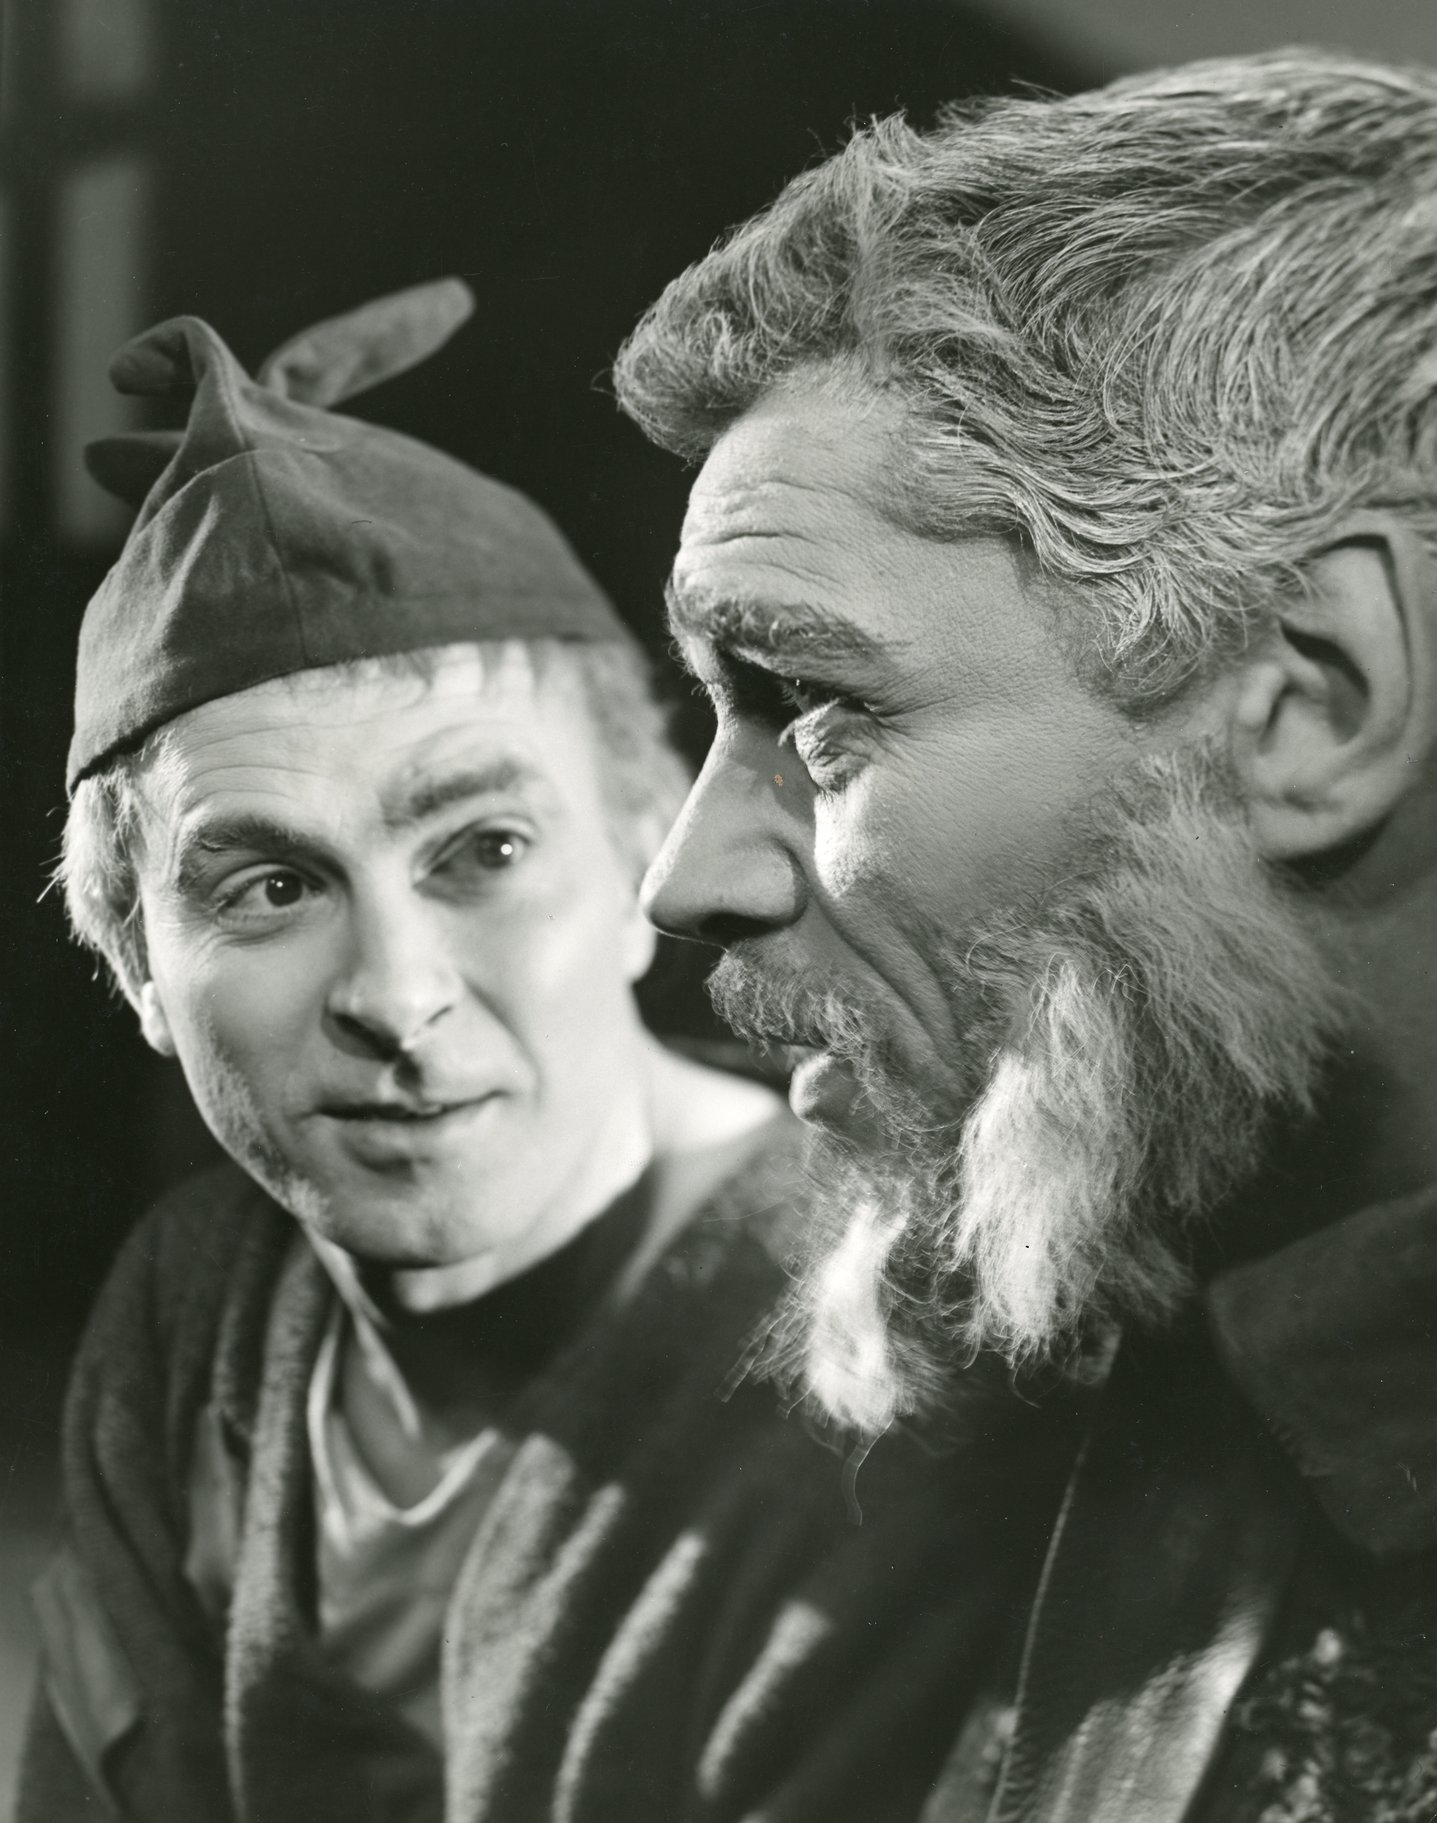 A man in a cloth cap talks to an older bearded man.